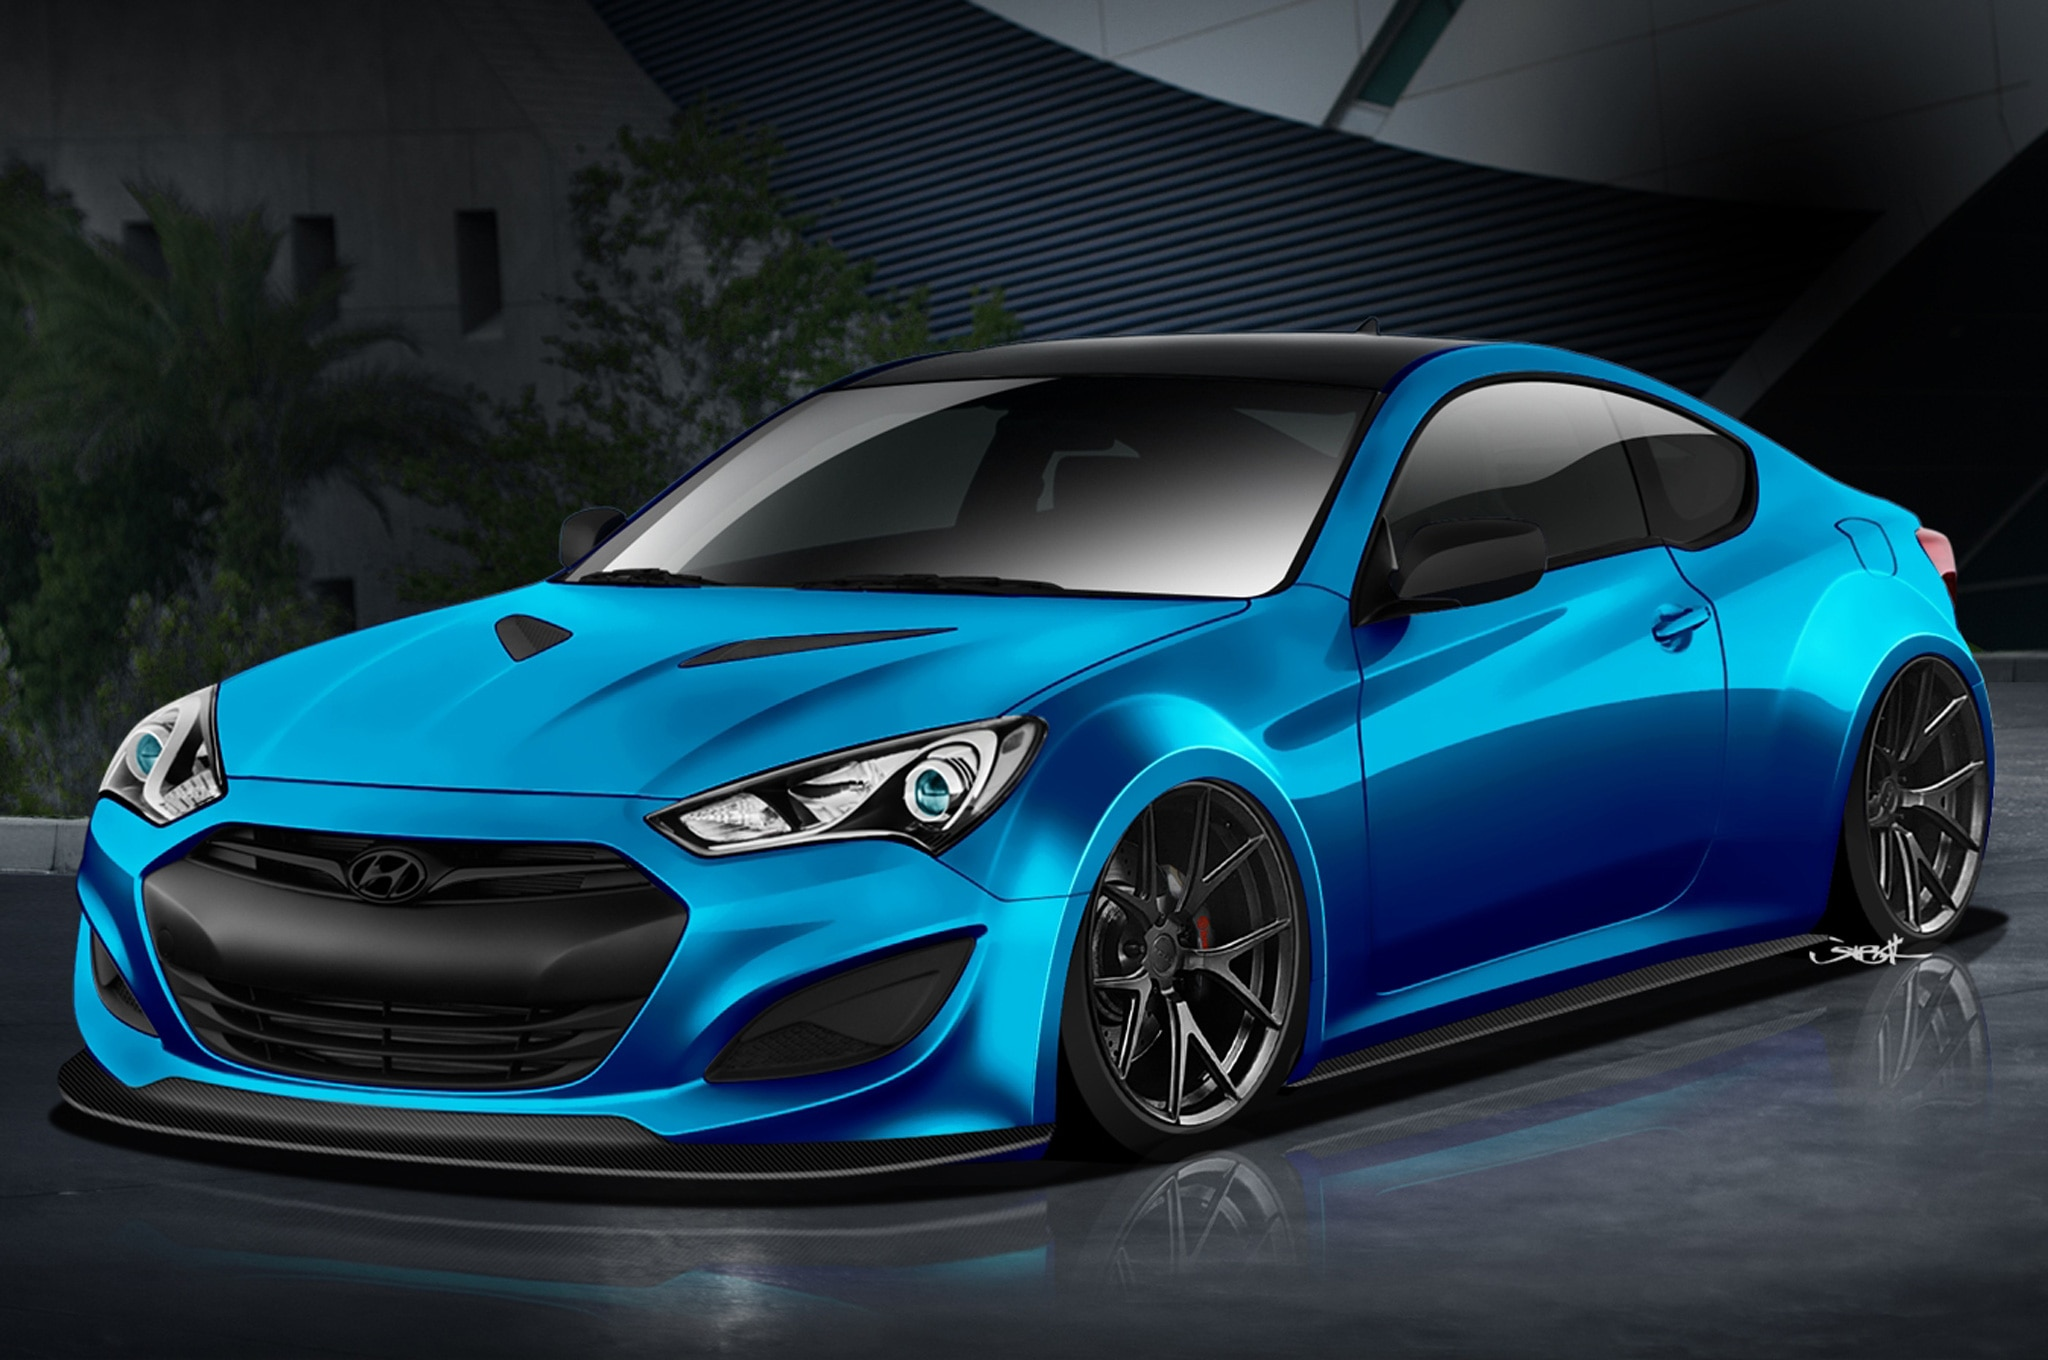 Hyundai Genesis Coupe JP Edition SEMA Front Three Quarter Rendering1